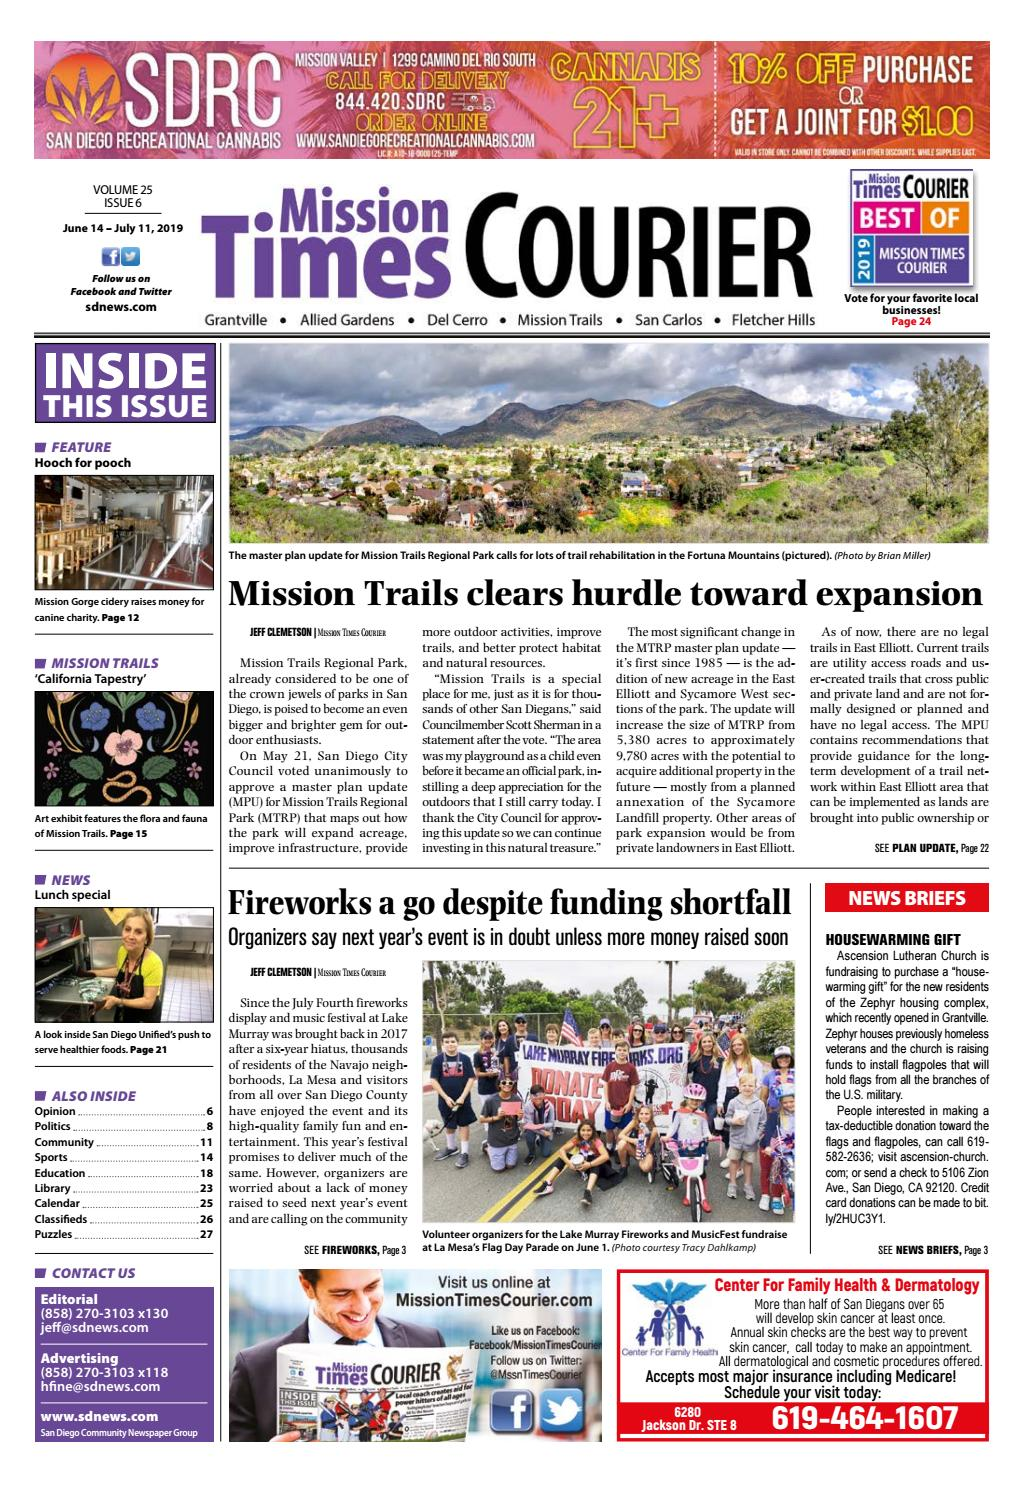 Mission Times Courier - Volume 25, Issue 6